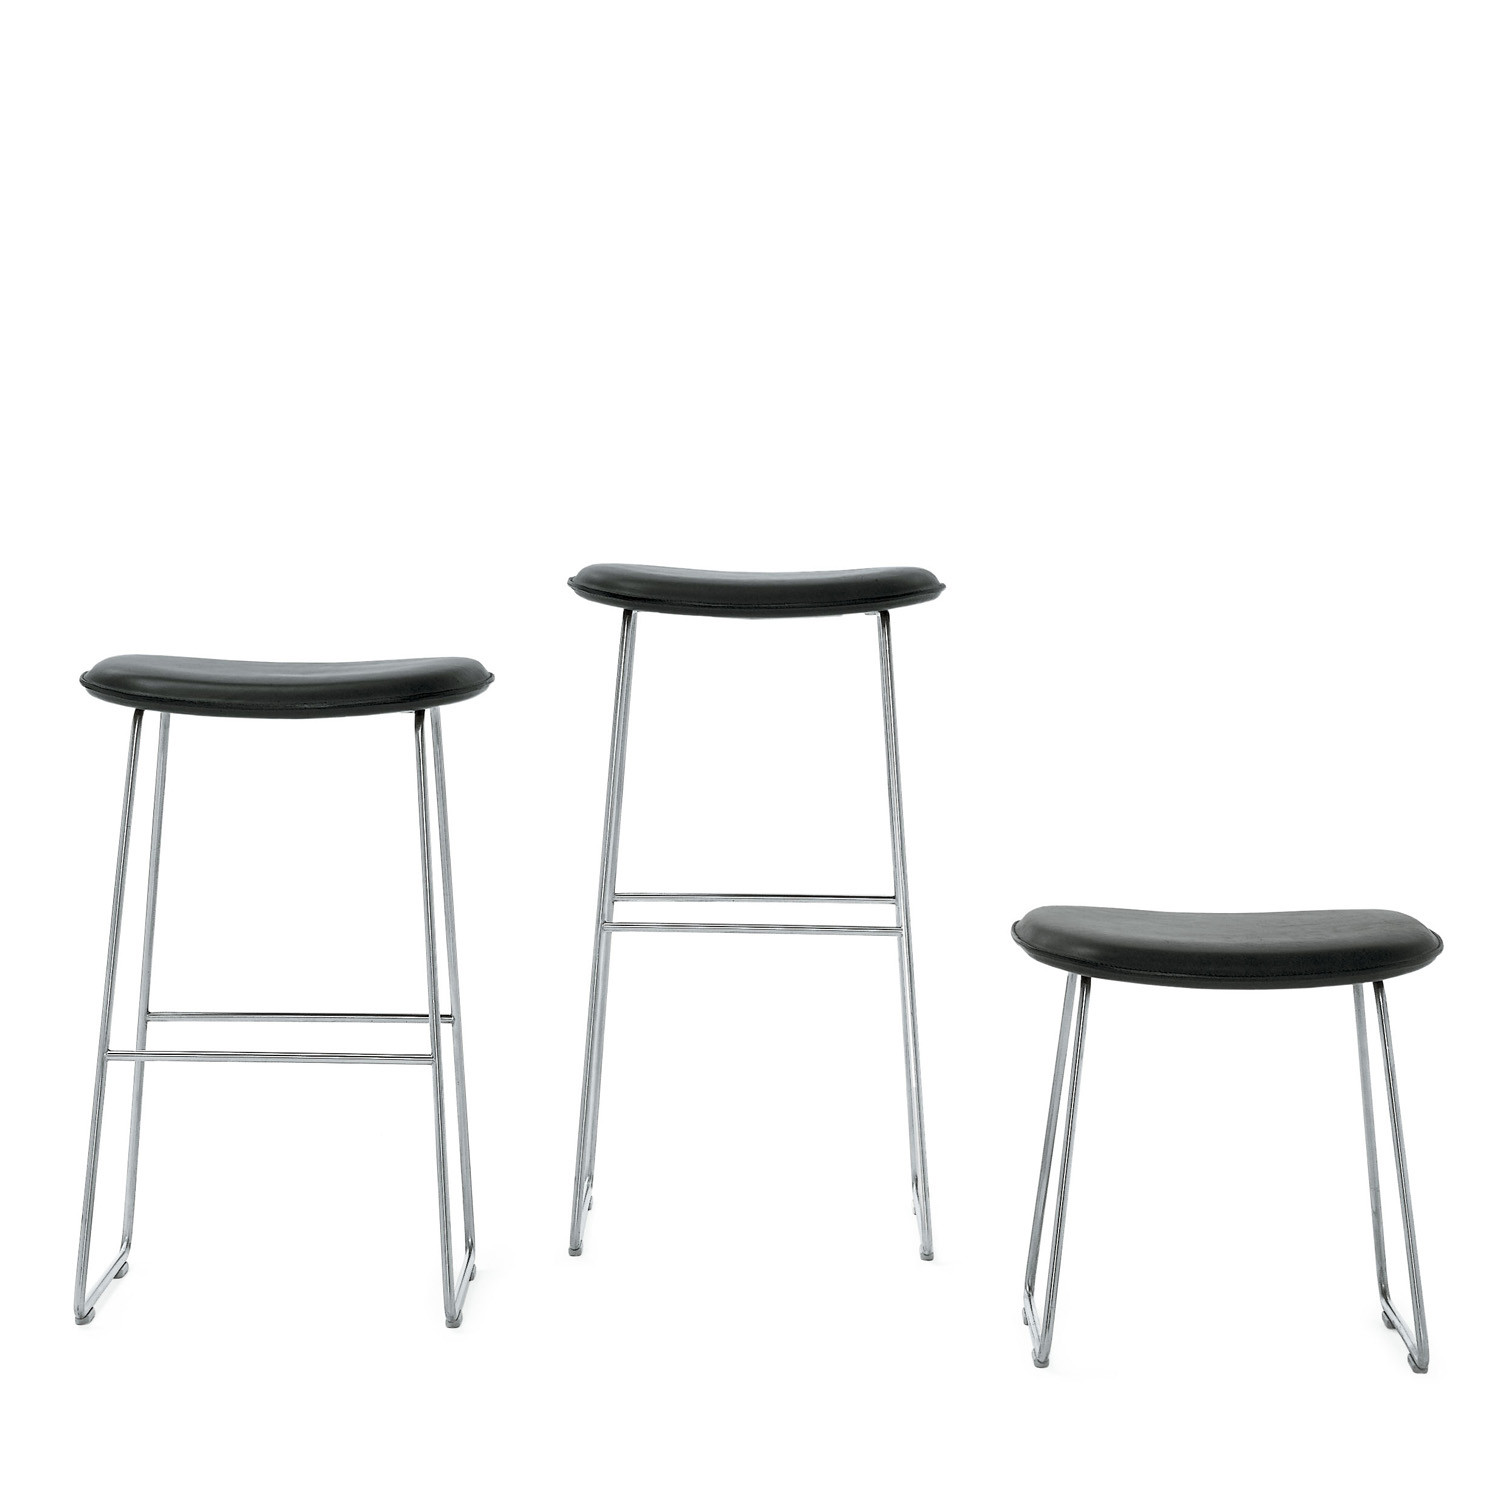 Morrison Low, Medium and High Stools